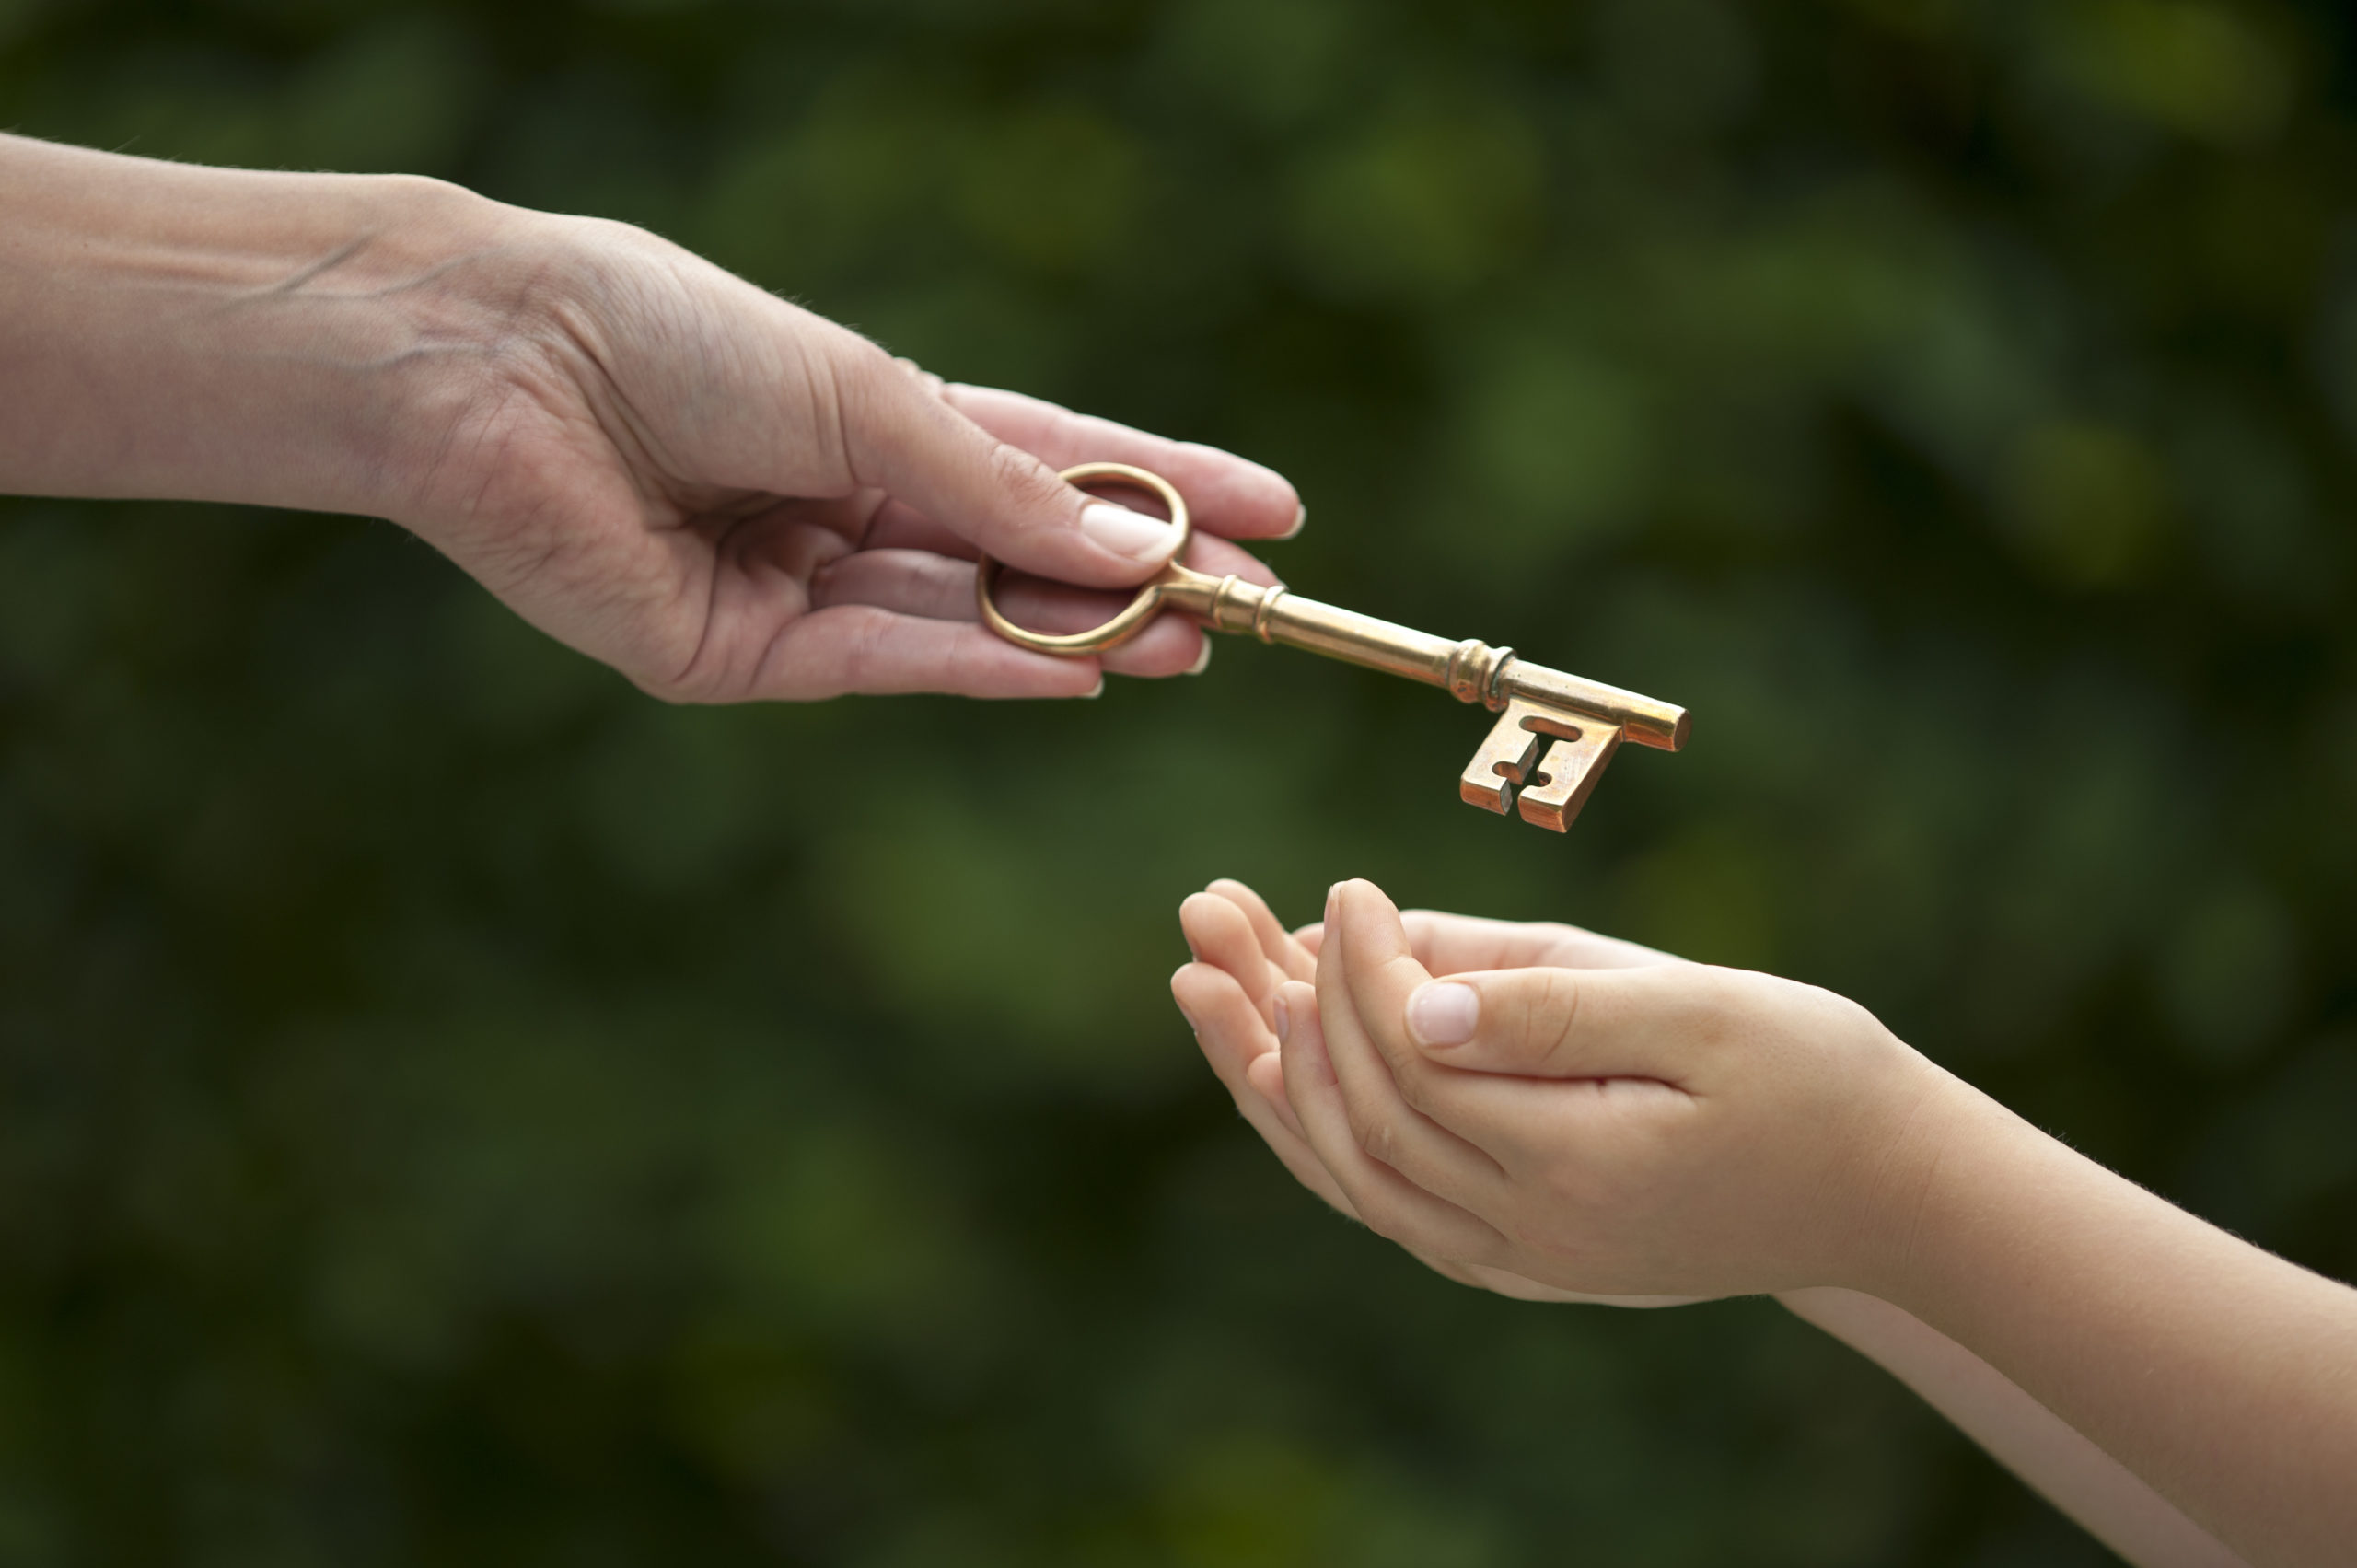 I Received an Inheritance, Now What?